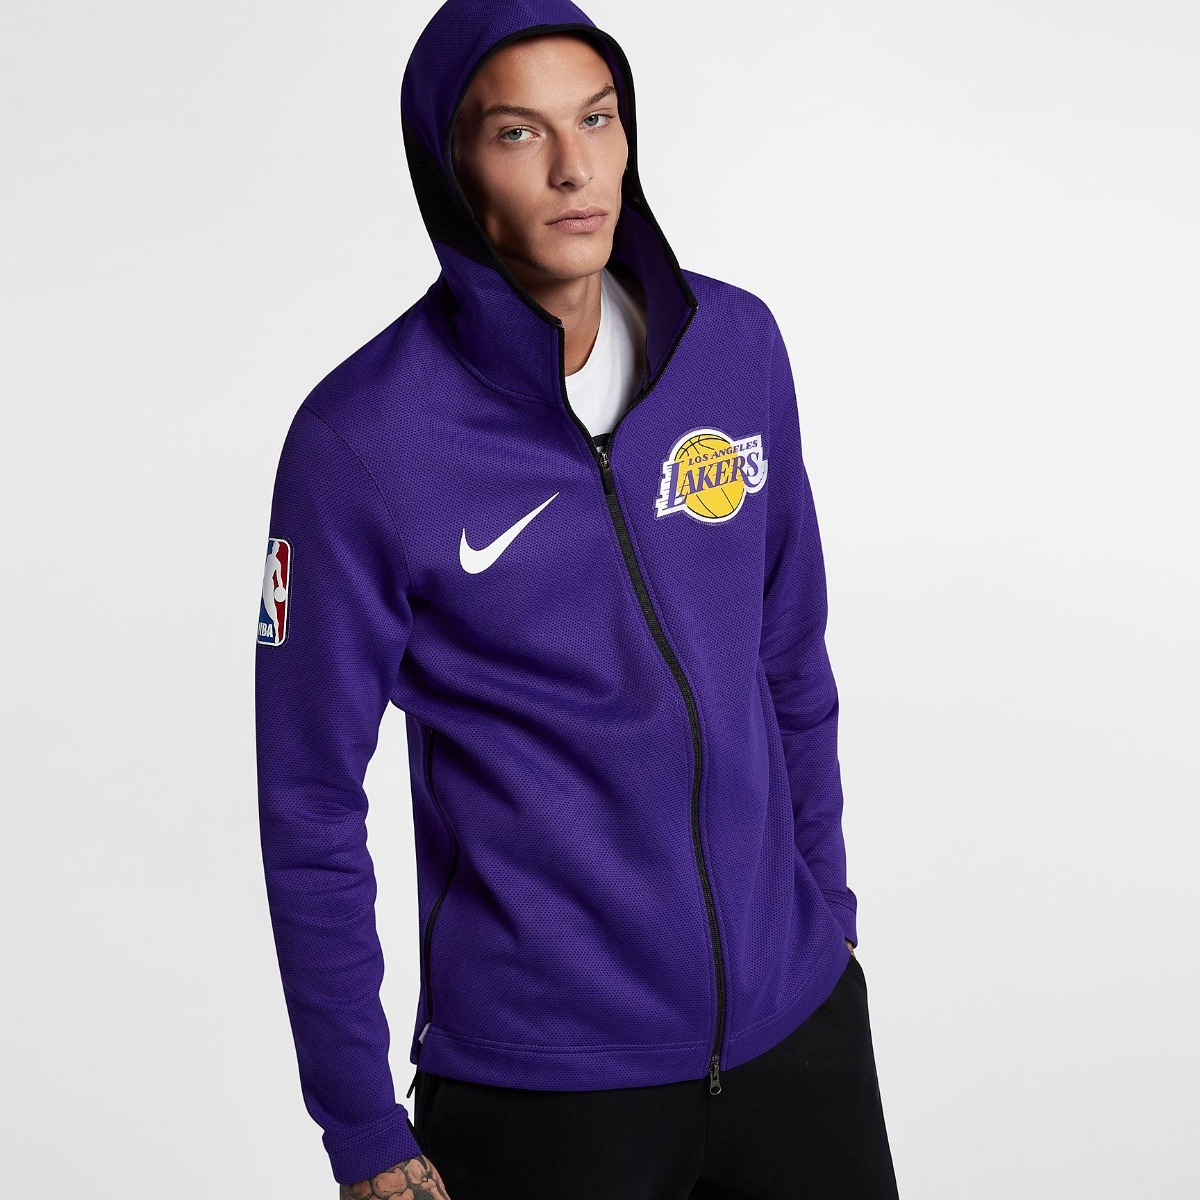 A Nba Chaqueta Lakers Capucha Nike Con Pedido Therma Flex ZOvq0P